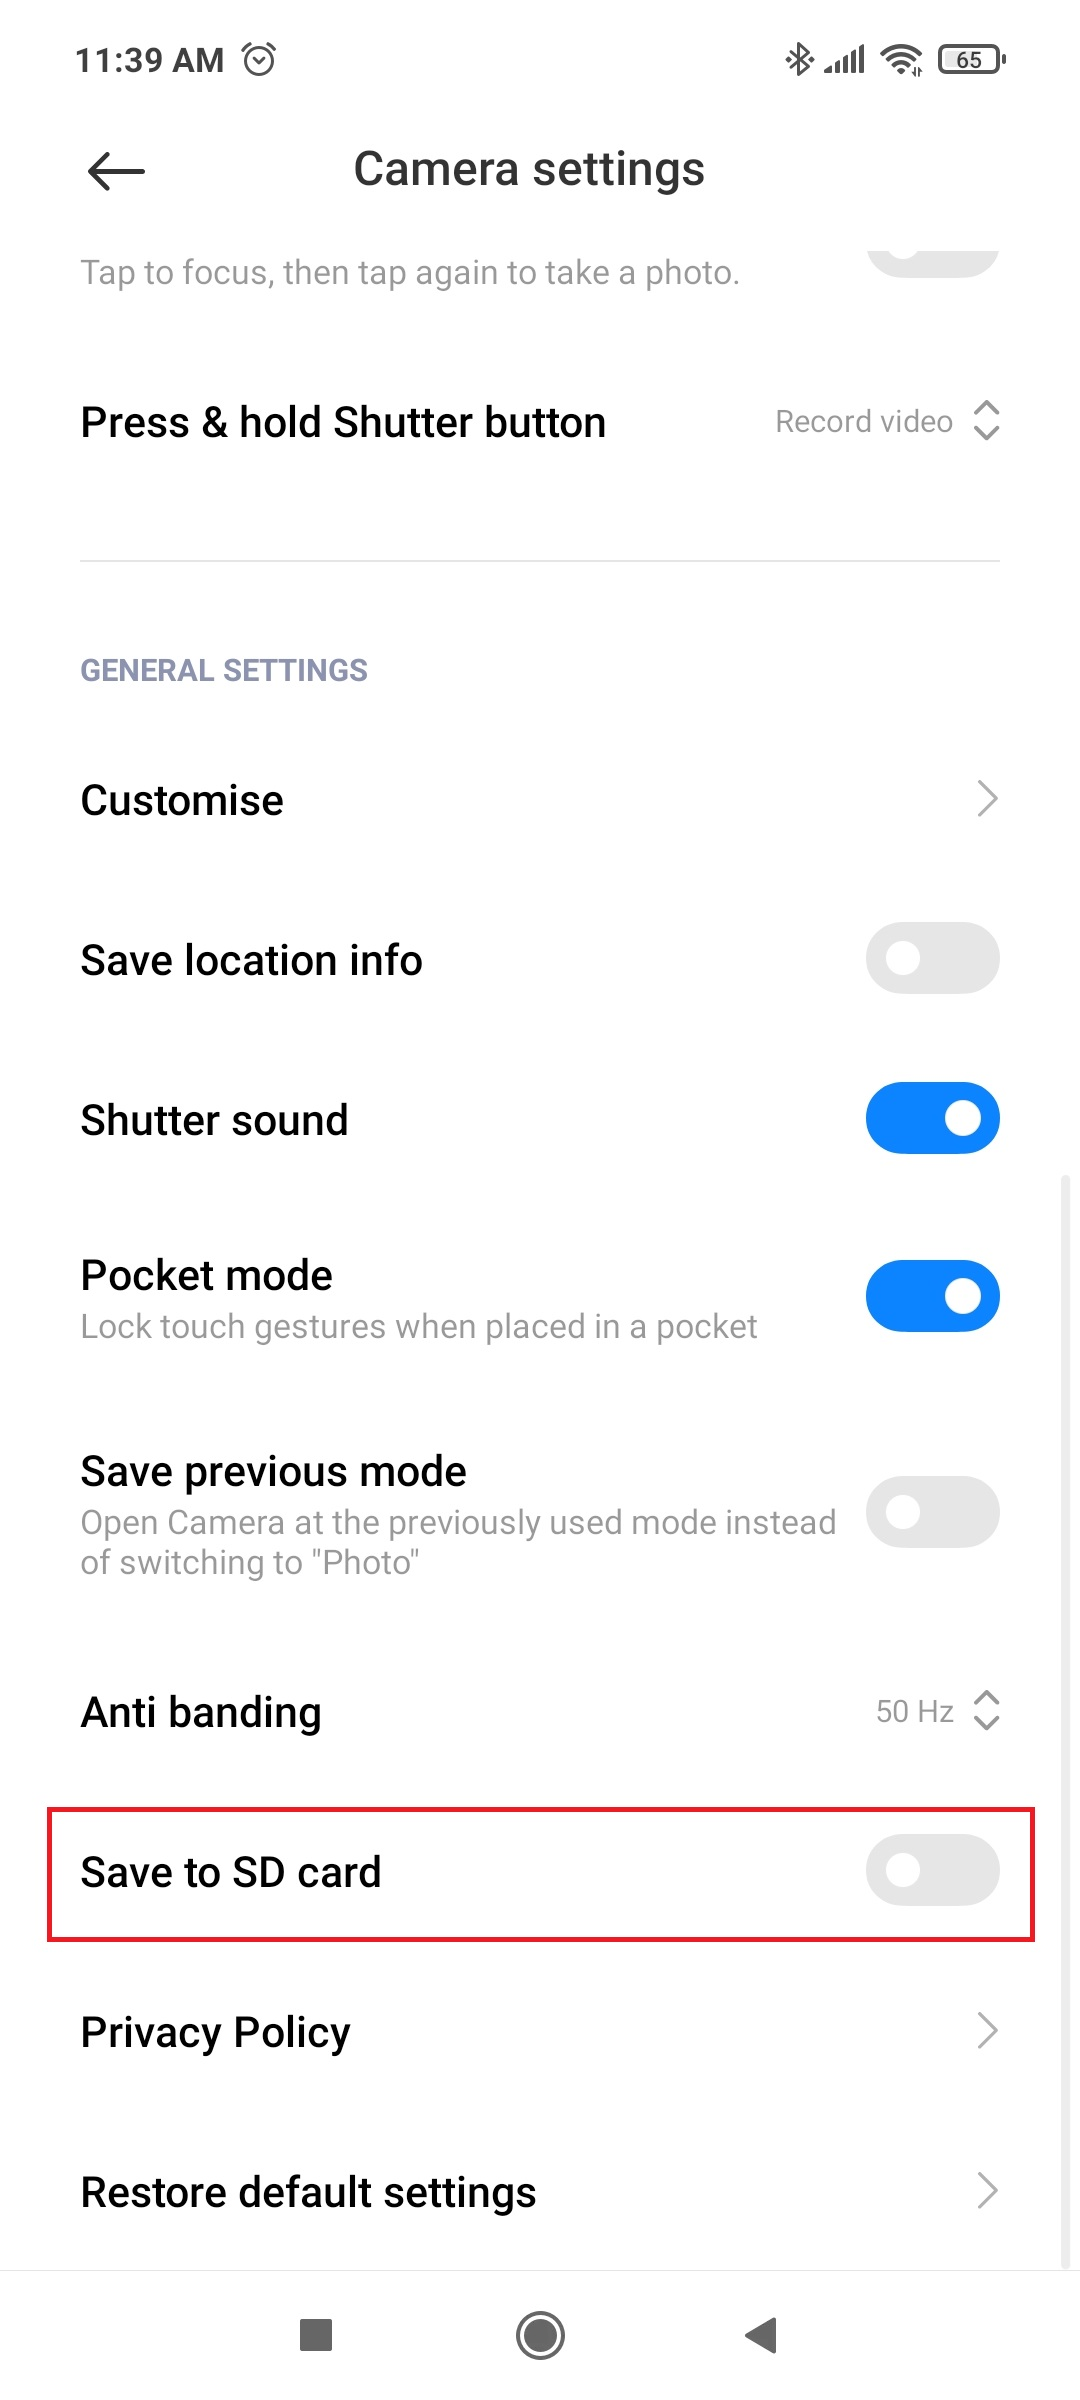 android save photos to sd card by default